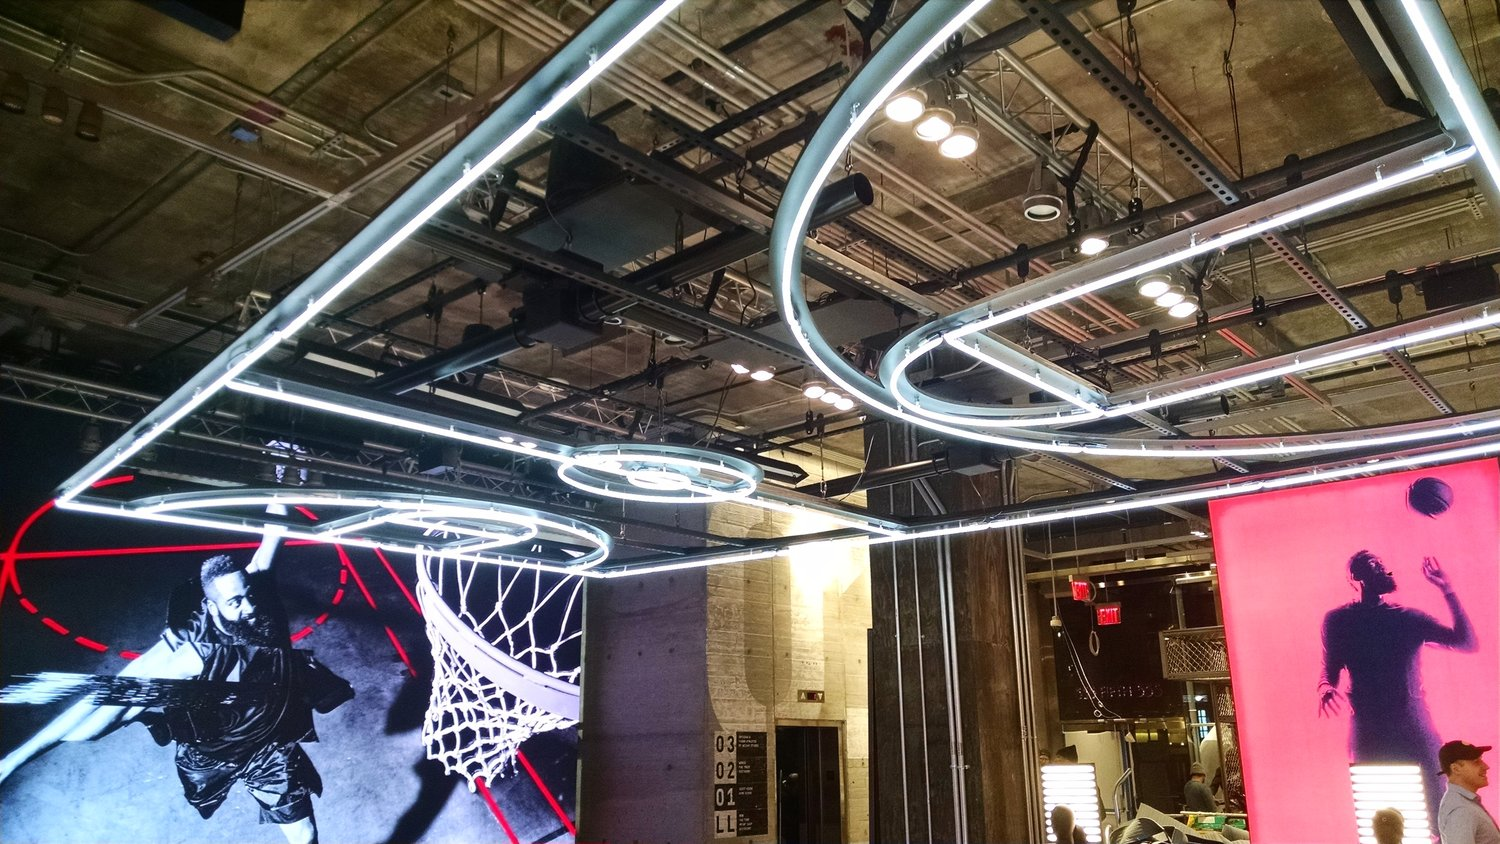 Directional subwoofers contain audio to a broad zone at the Adidas flagship store in New York City.